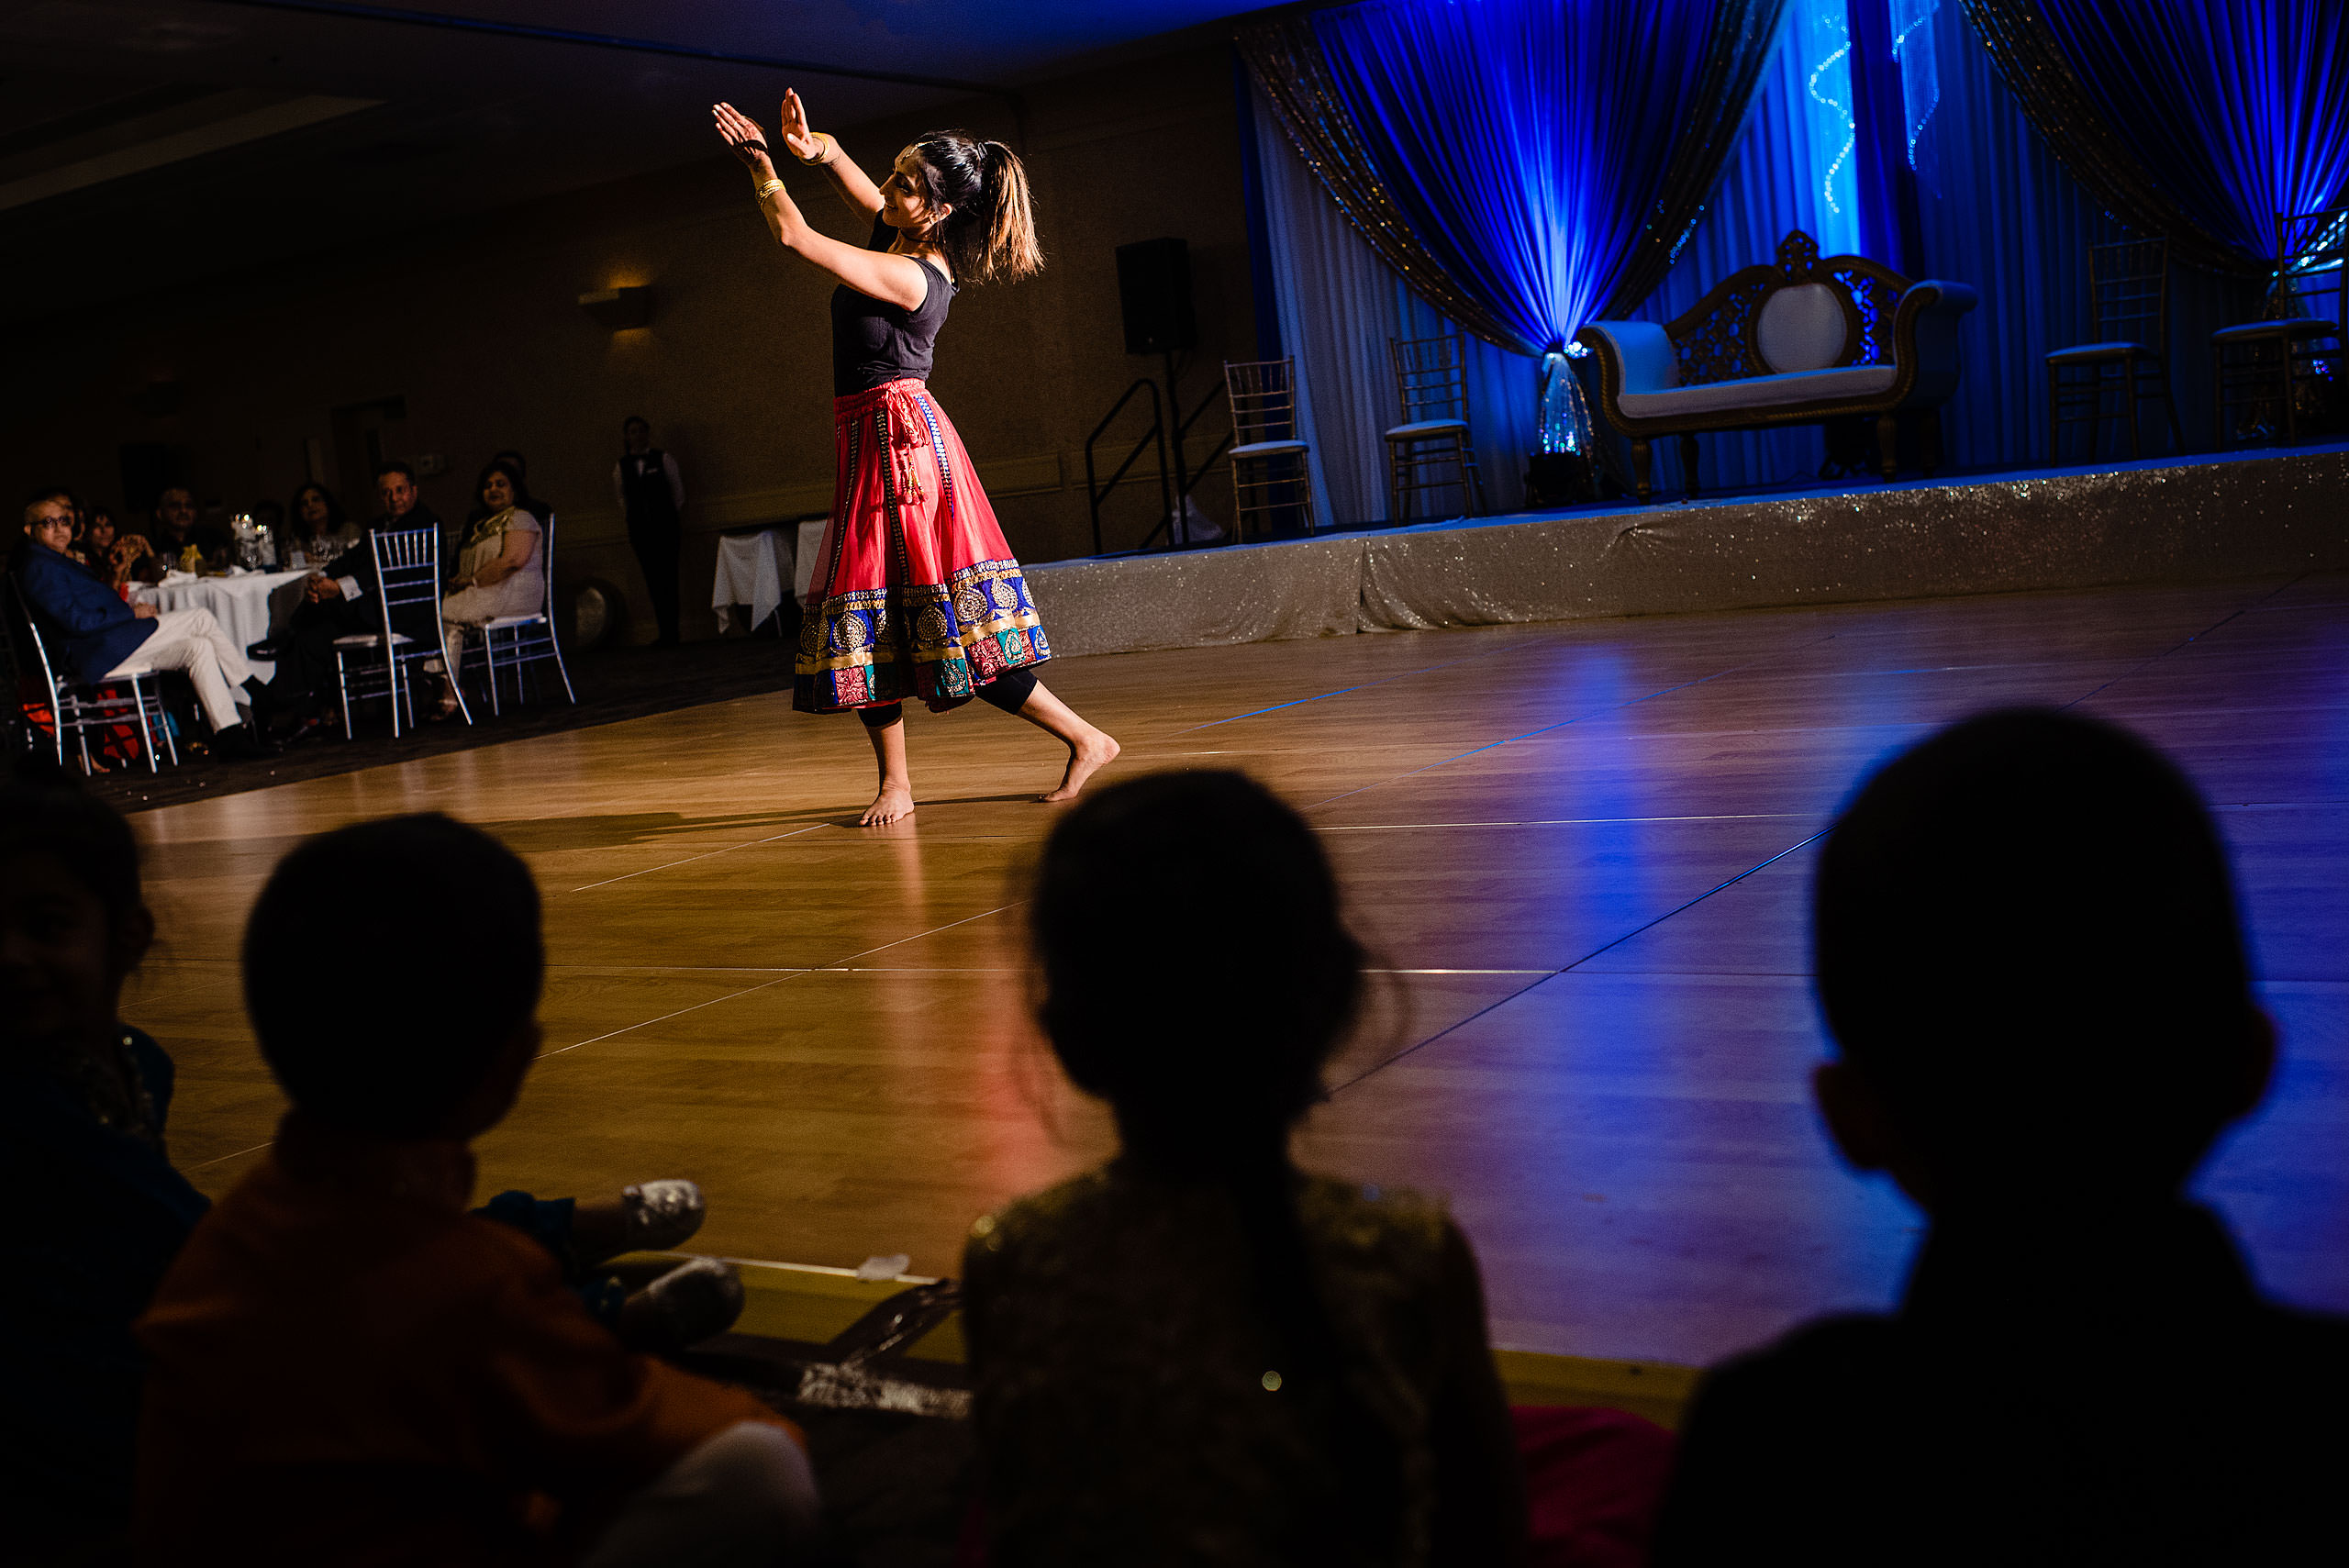 an indian dancer performing at a wedding by Calgary Banff Wedding Photographer Sean LeBlanc